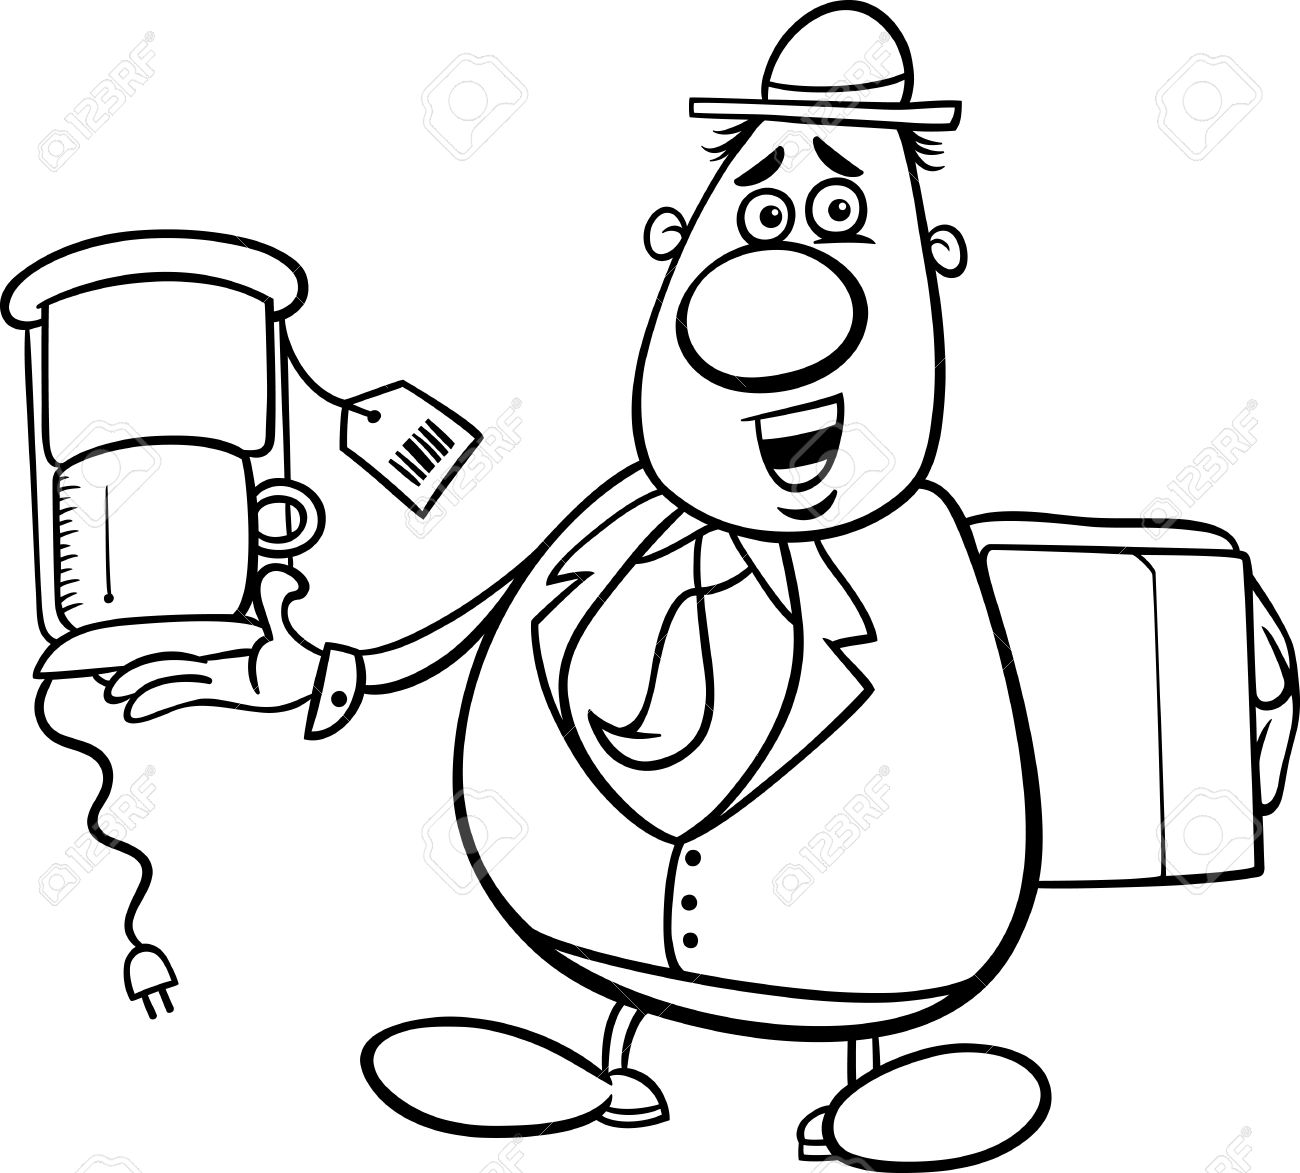 Black And White Cartoon Illustration Of Funny Salesman Or Bagman ...